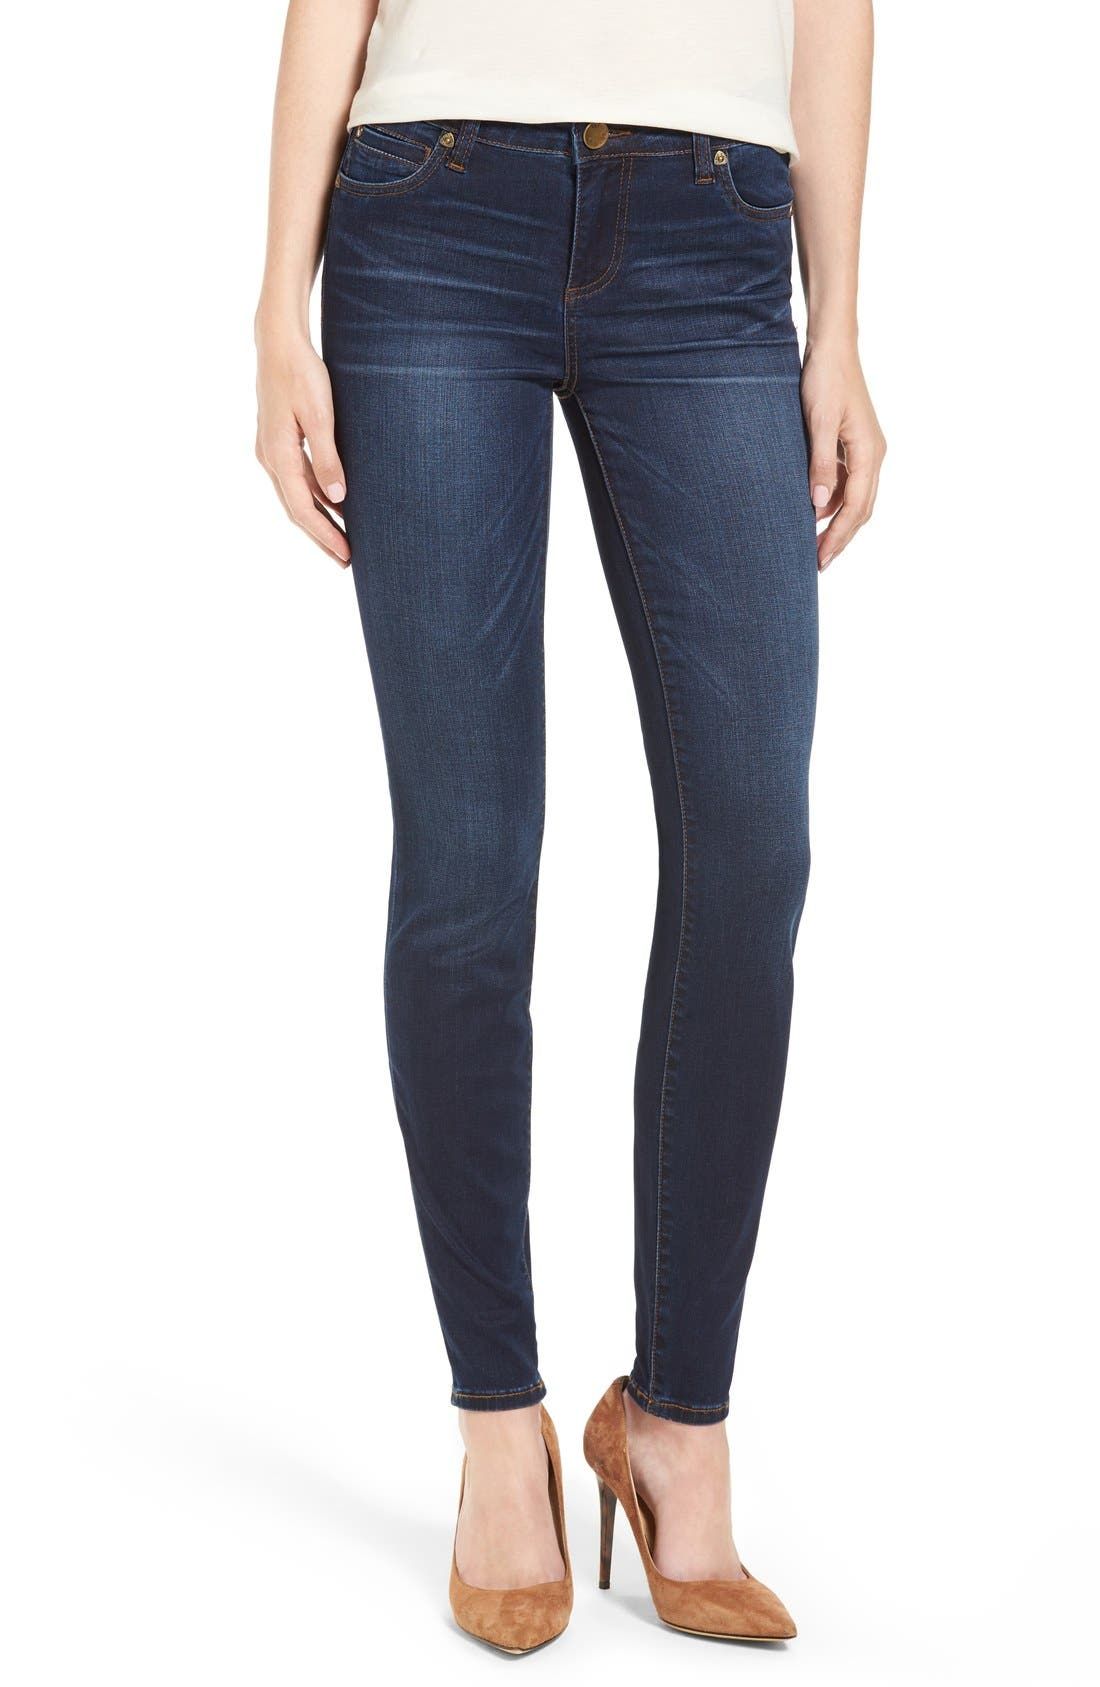 Main Image - Kut From the Kloth Mia Stretch Skinny Jeans (Awareness)